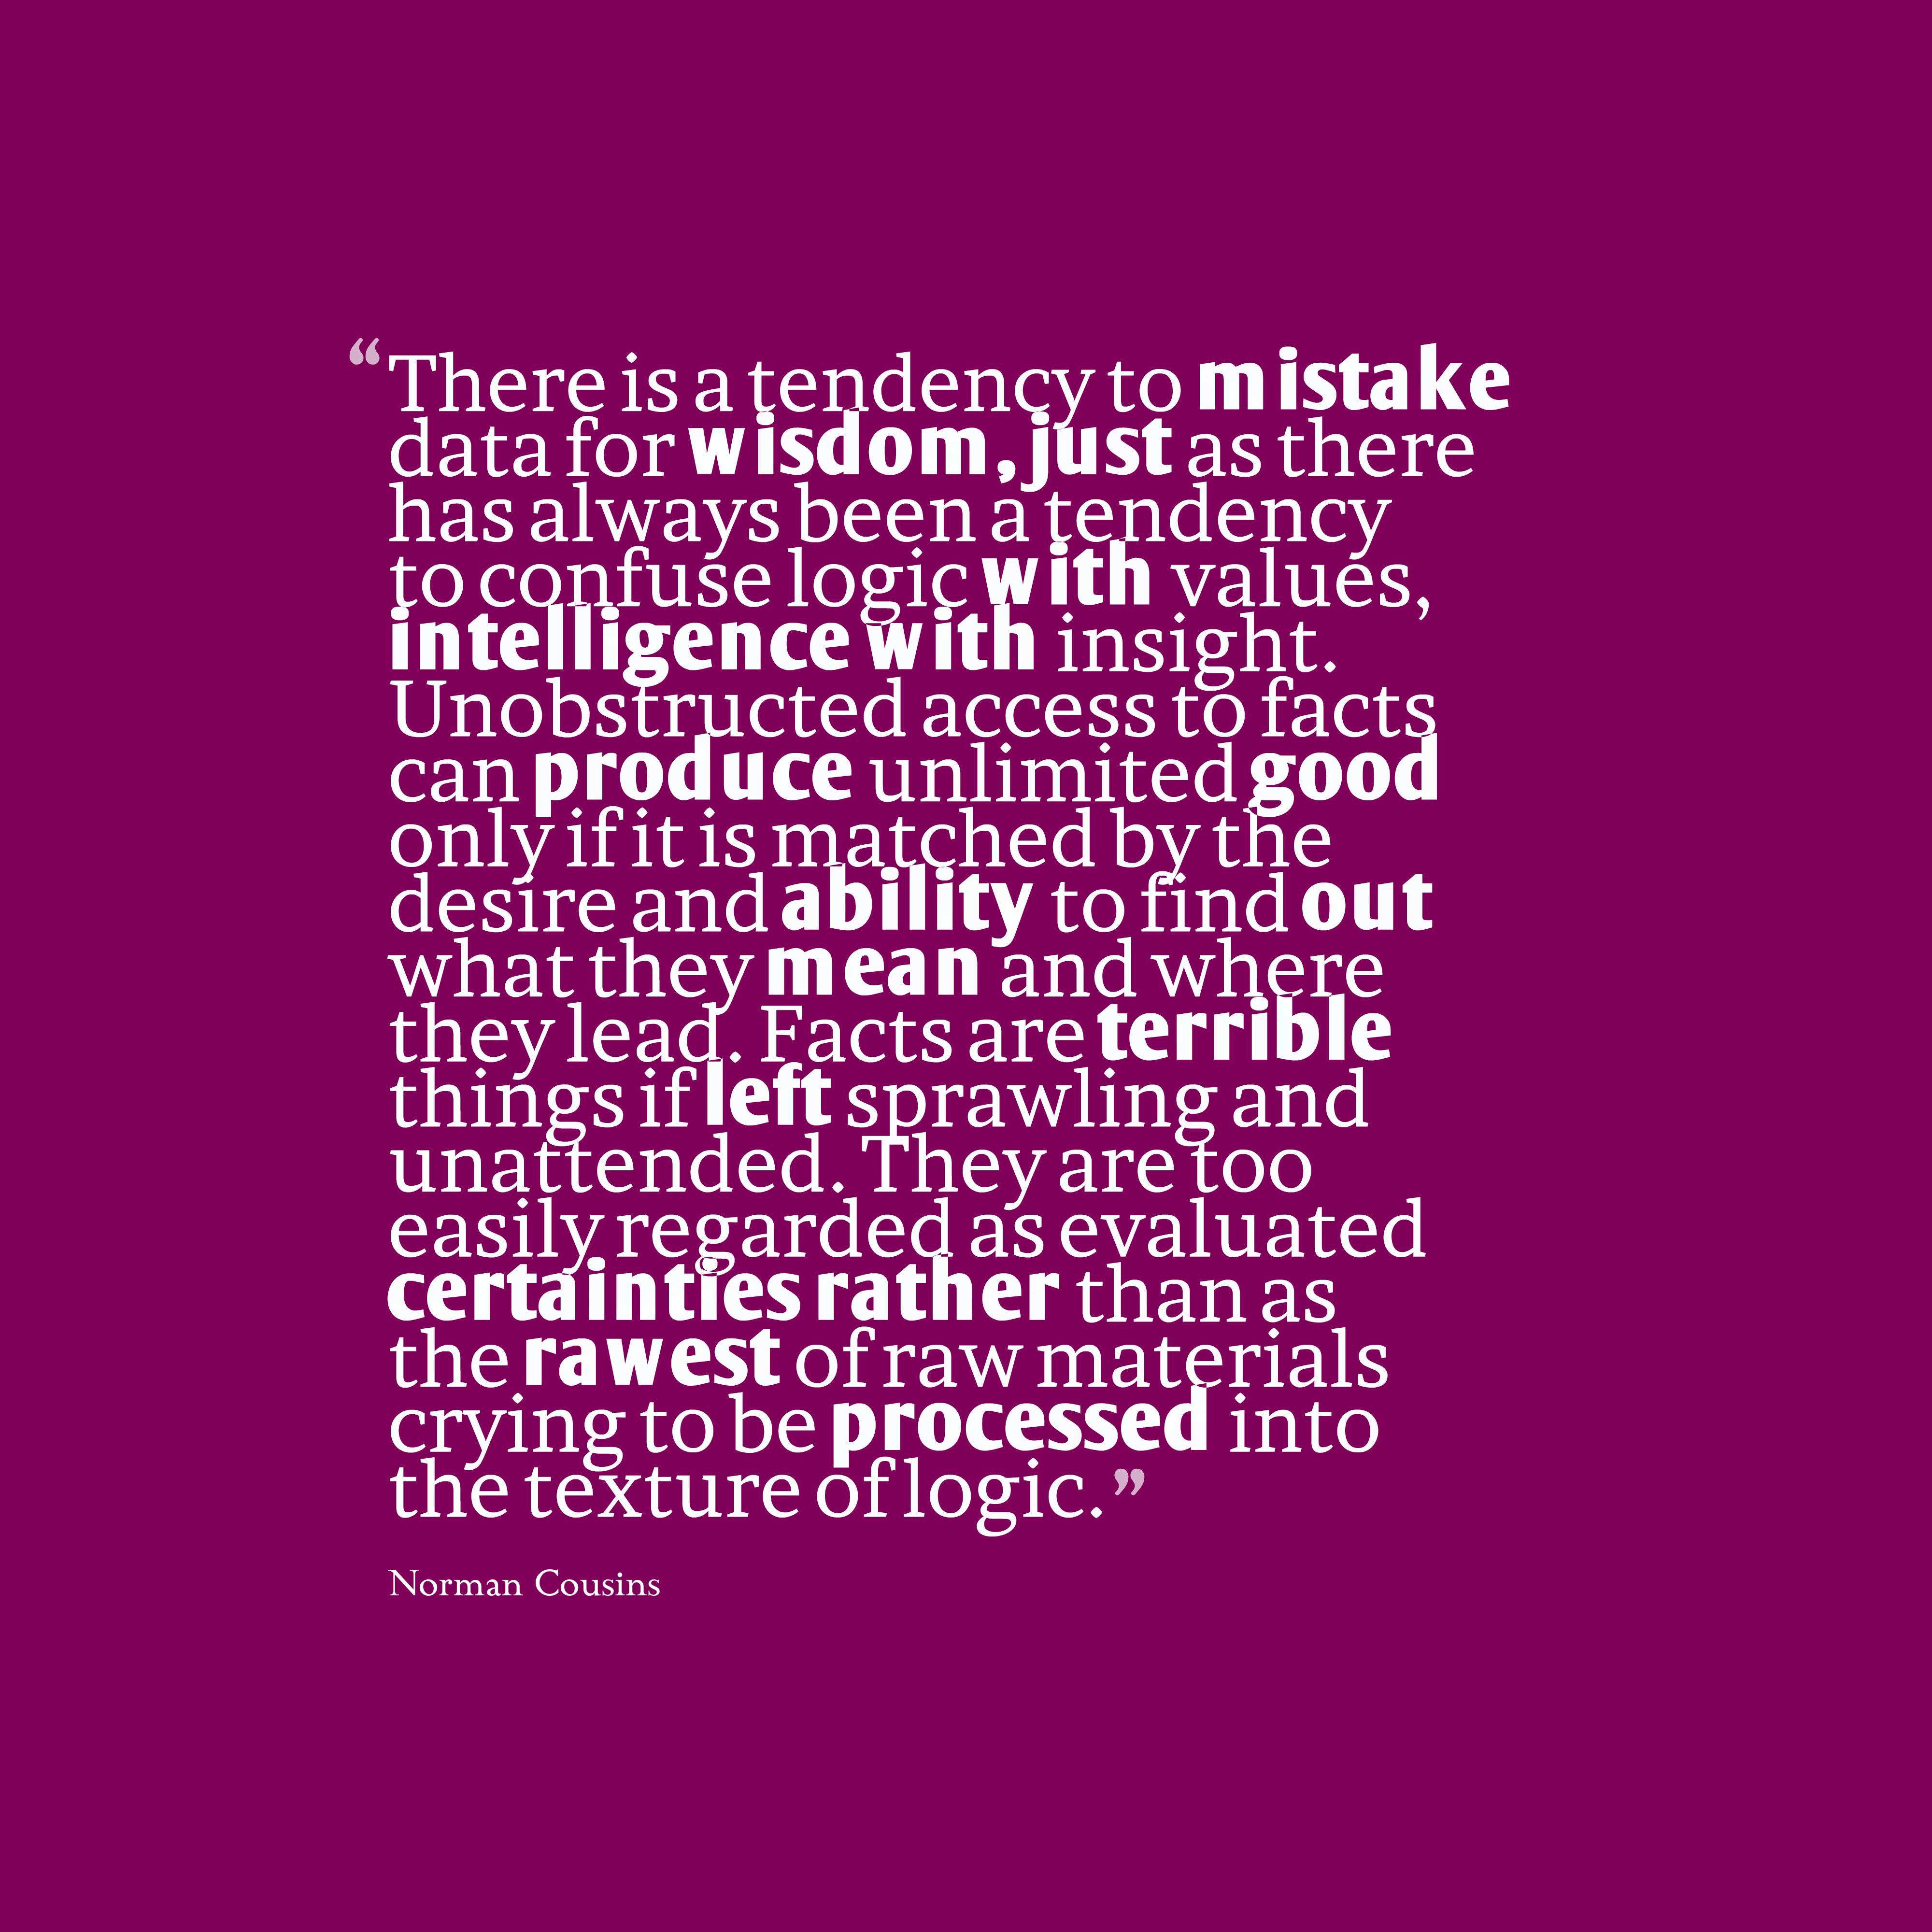 Quotes image of There is a tendency to mistake data for wisdom, just as there has always been a tendency to confuse logic with values, intelligence with insight. Unobstructed access to facts can produce unlimited good only if it is matched by the desire and ability to find out what they mean and where they lead. Facts are terrible things if left sprawling and unattended. They are too easily regarded as evaluated certainties rather than as the rawest of raw materials crying to be processed into the texture of logic.